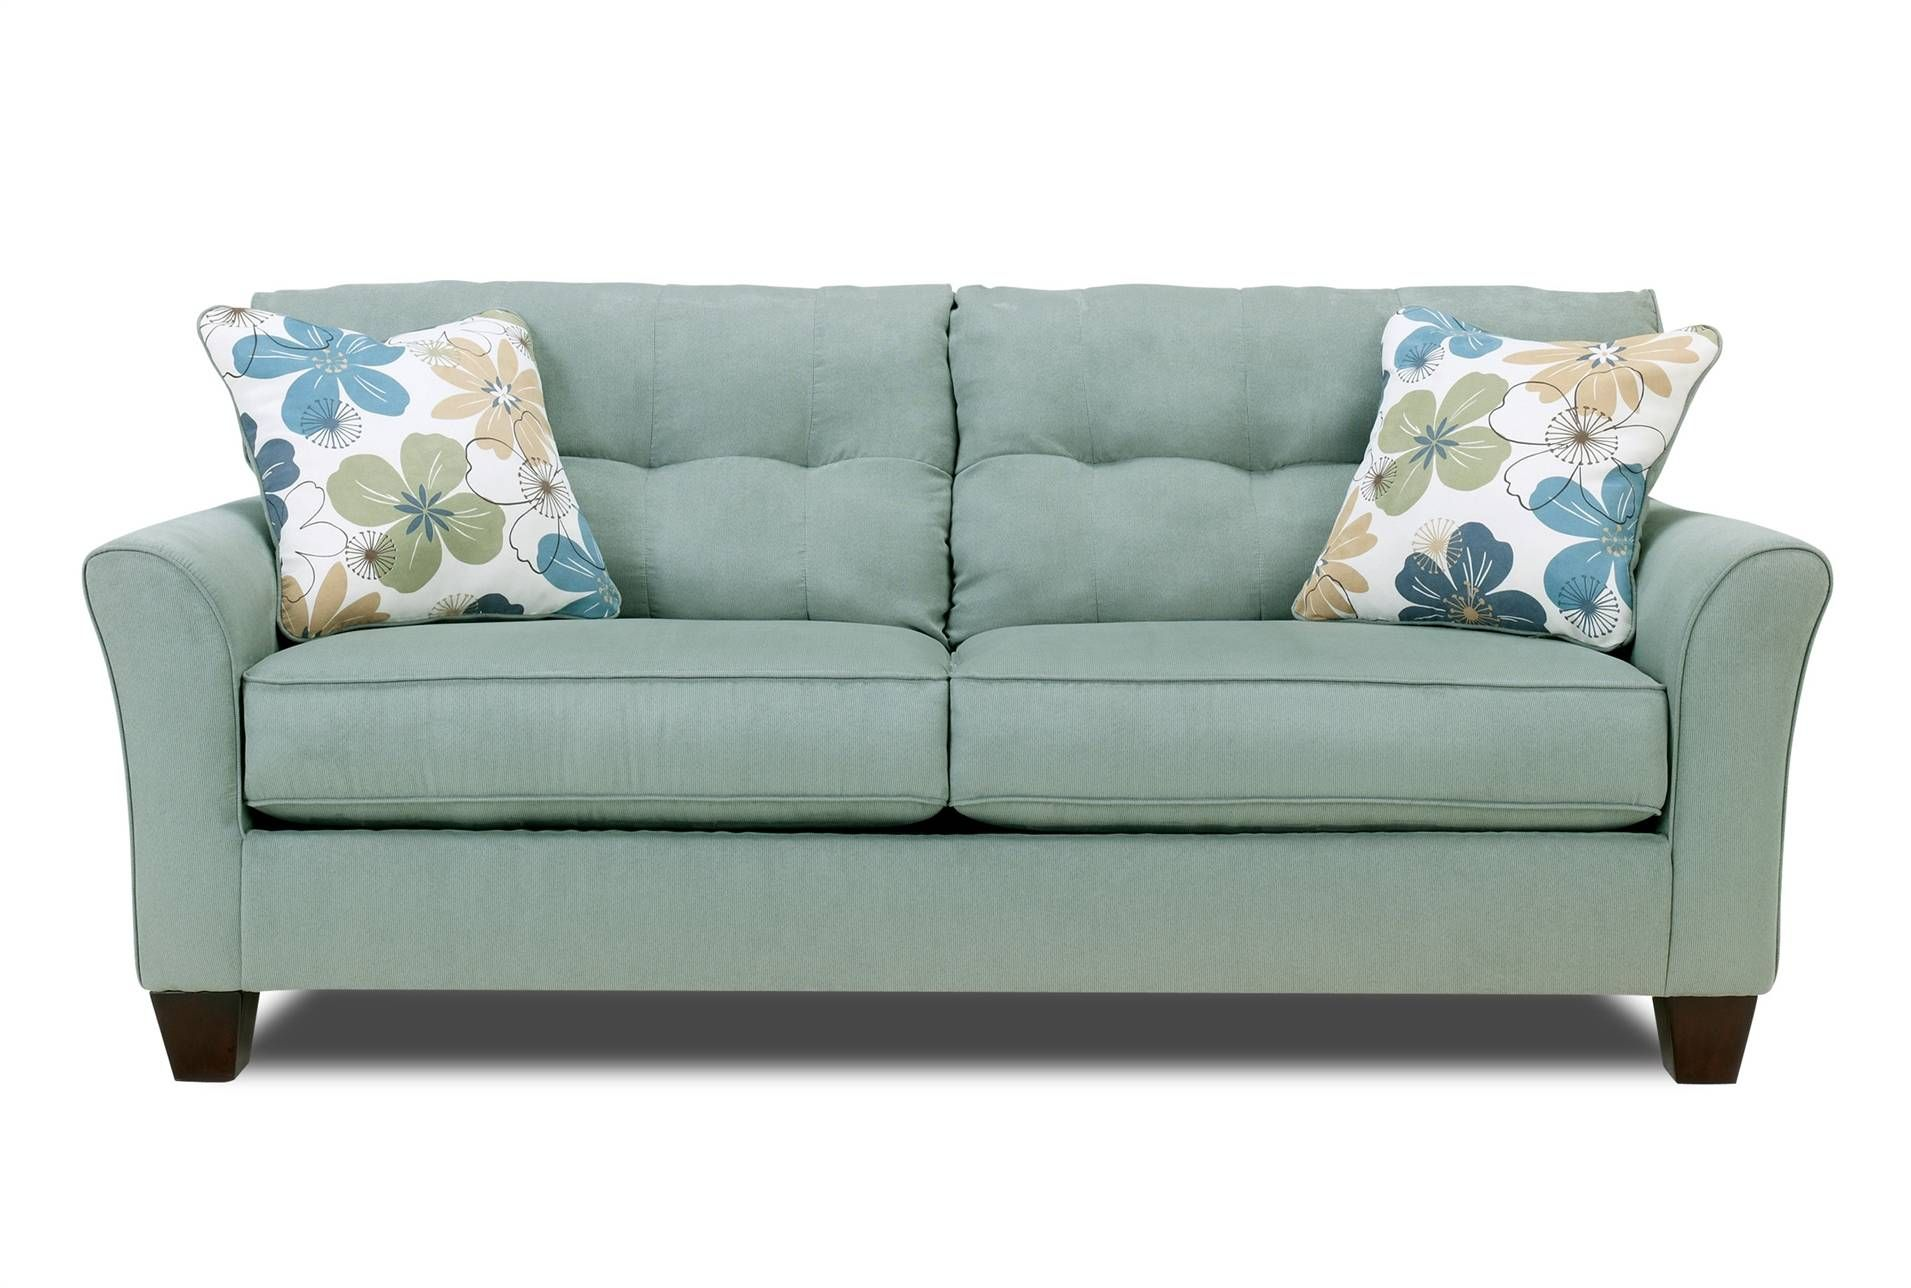 $295 I would change out the pillows but I like the sofa and it s